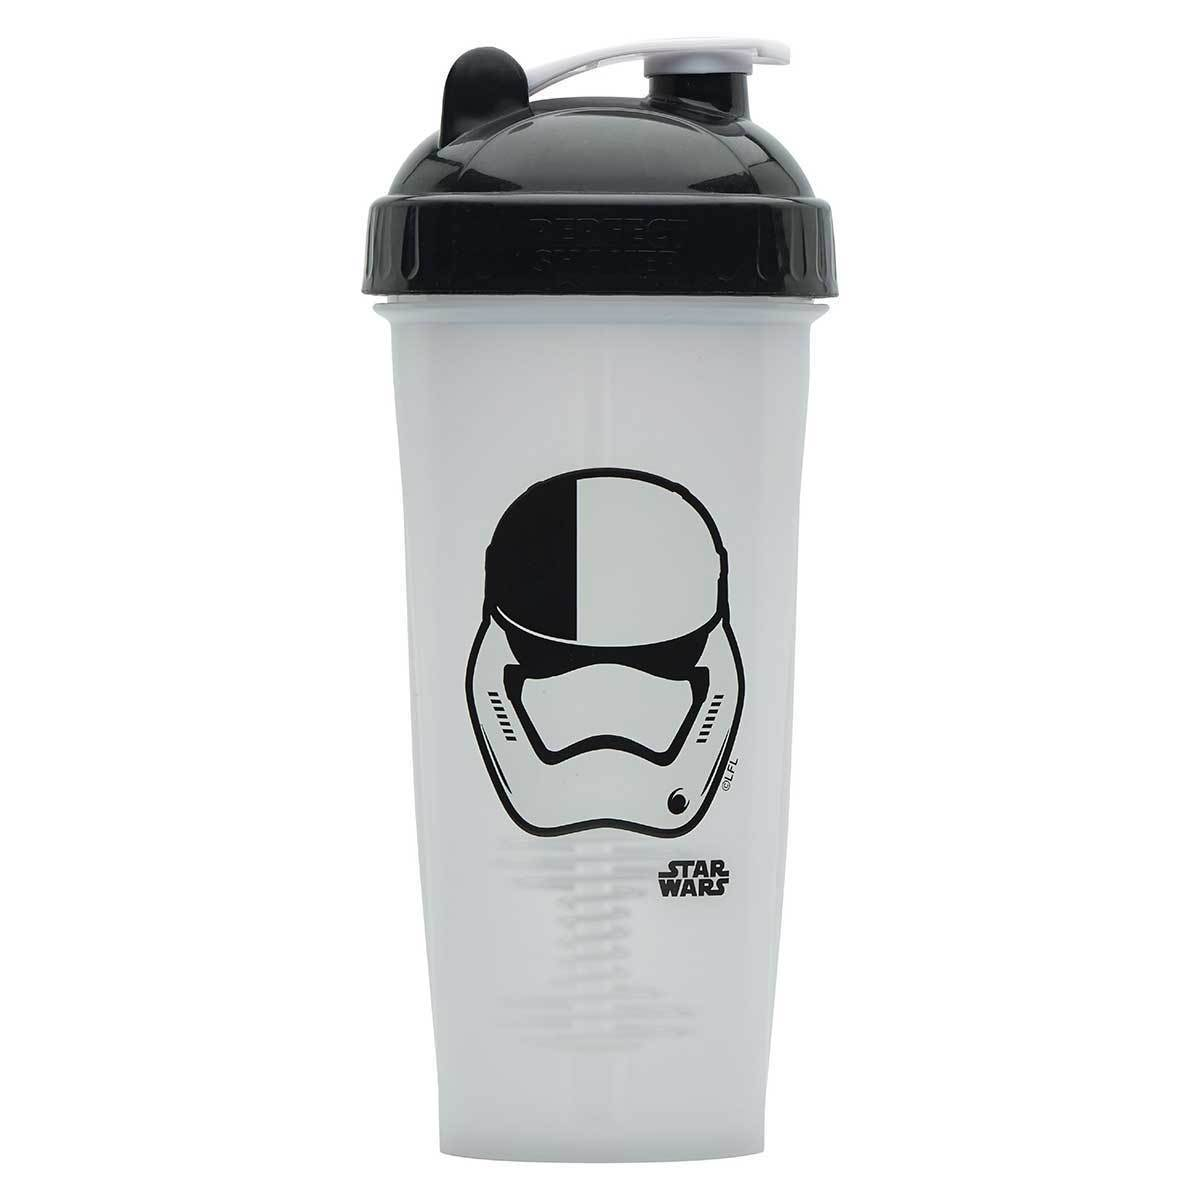 Star Wars Executioner Stormtrooper Shaker Bottle 28oz Fitness Accessories and Apparel PerfectShaker  (1059337830443)